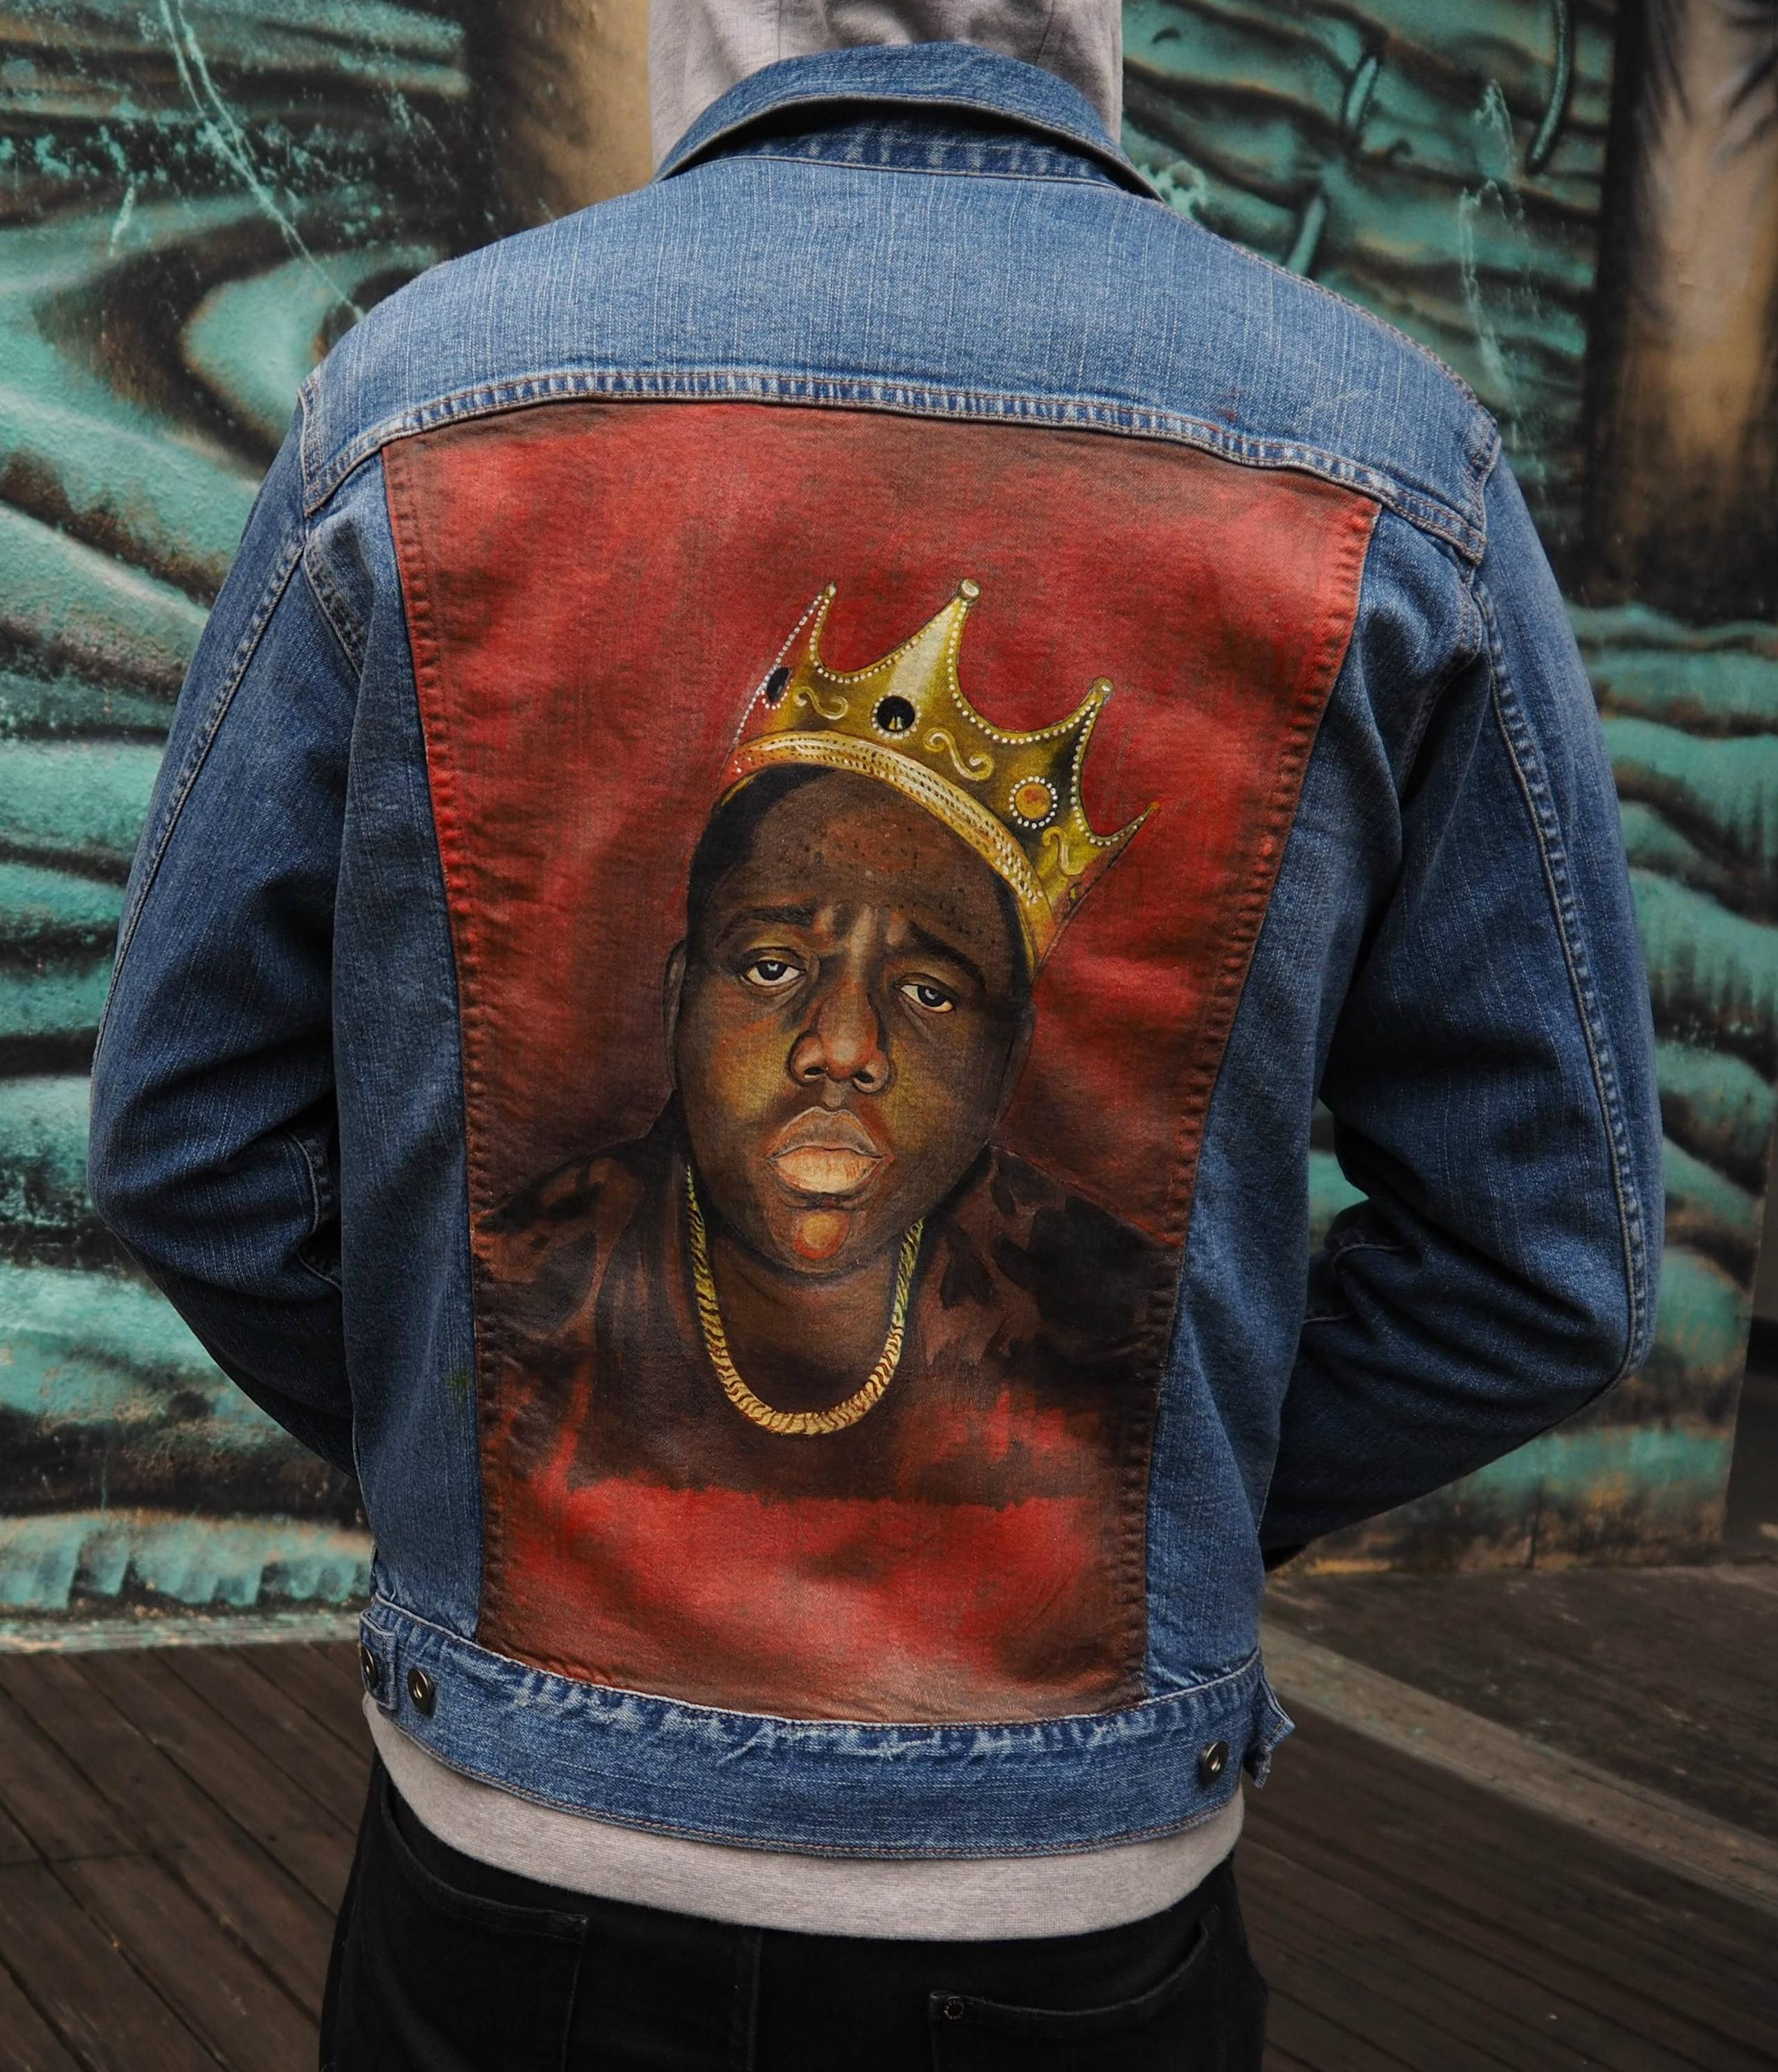 9417976b2 Painted Biggie Smalls on the back of a denim jacket. I'm happy with it